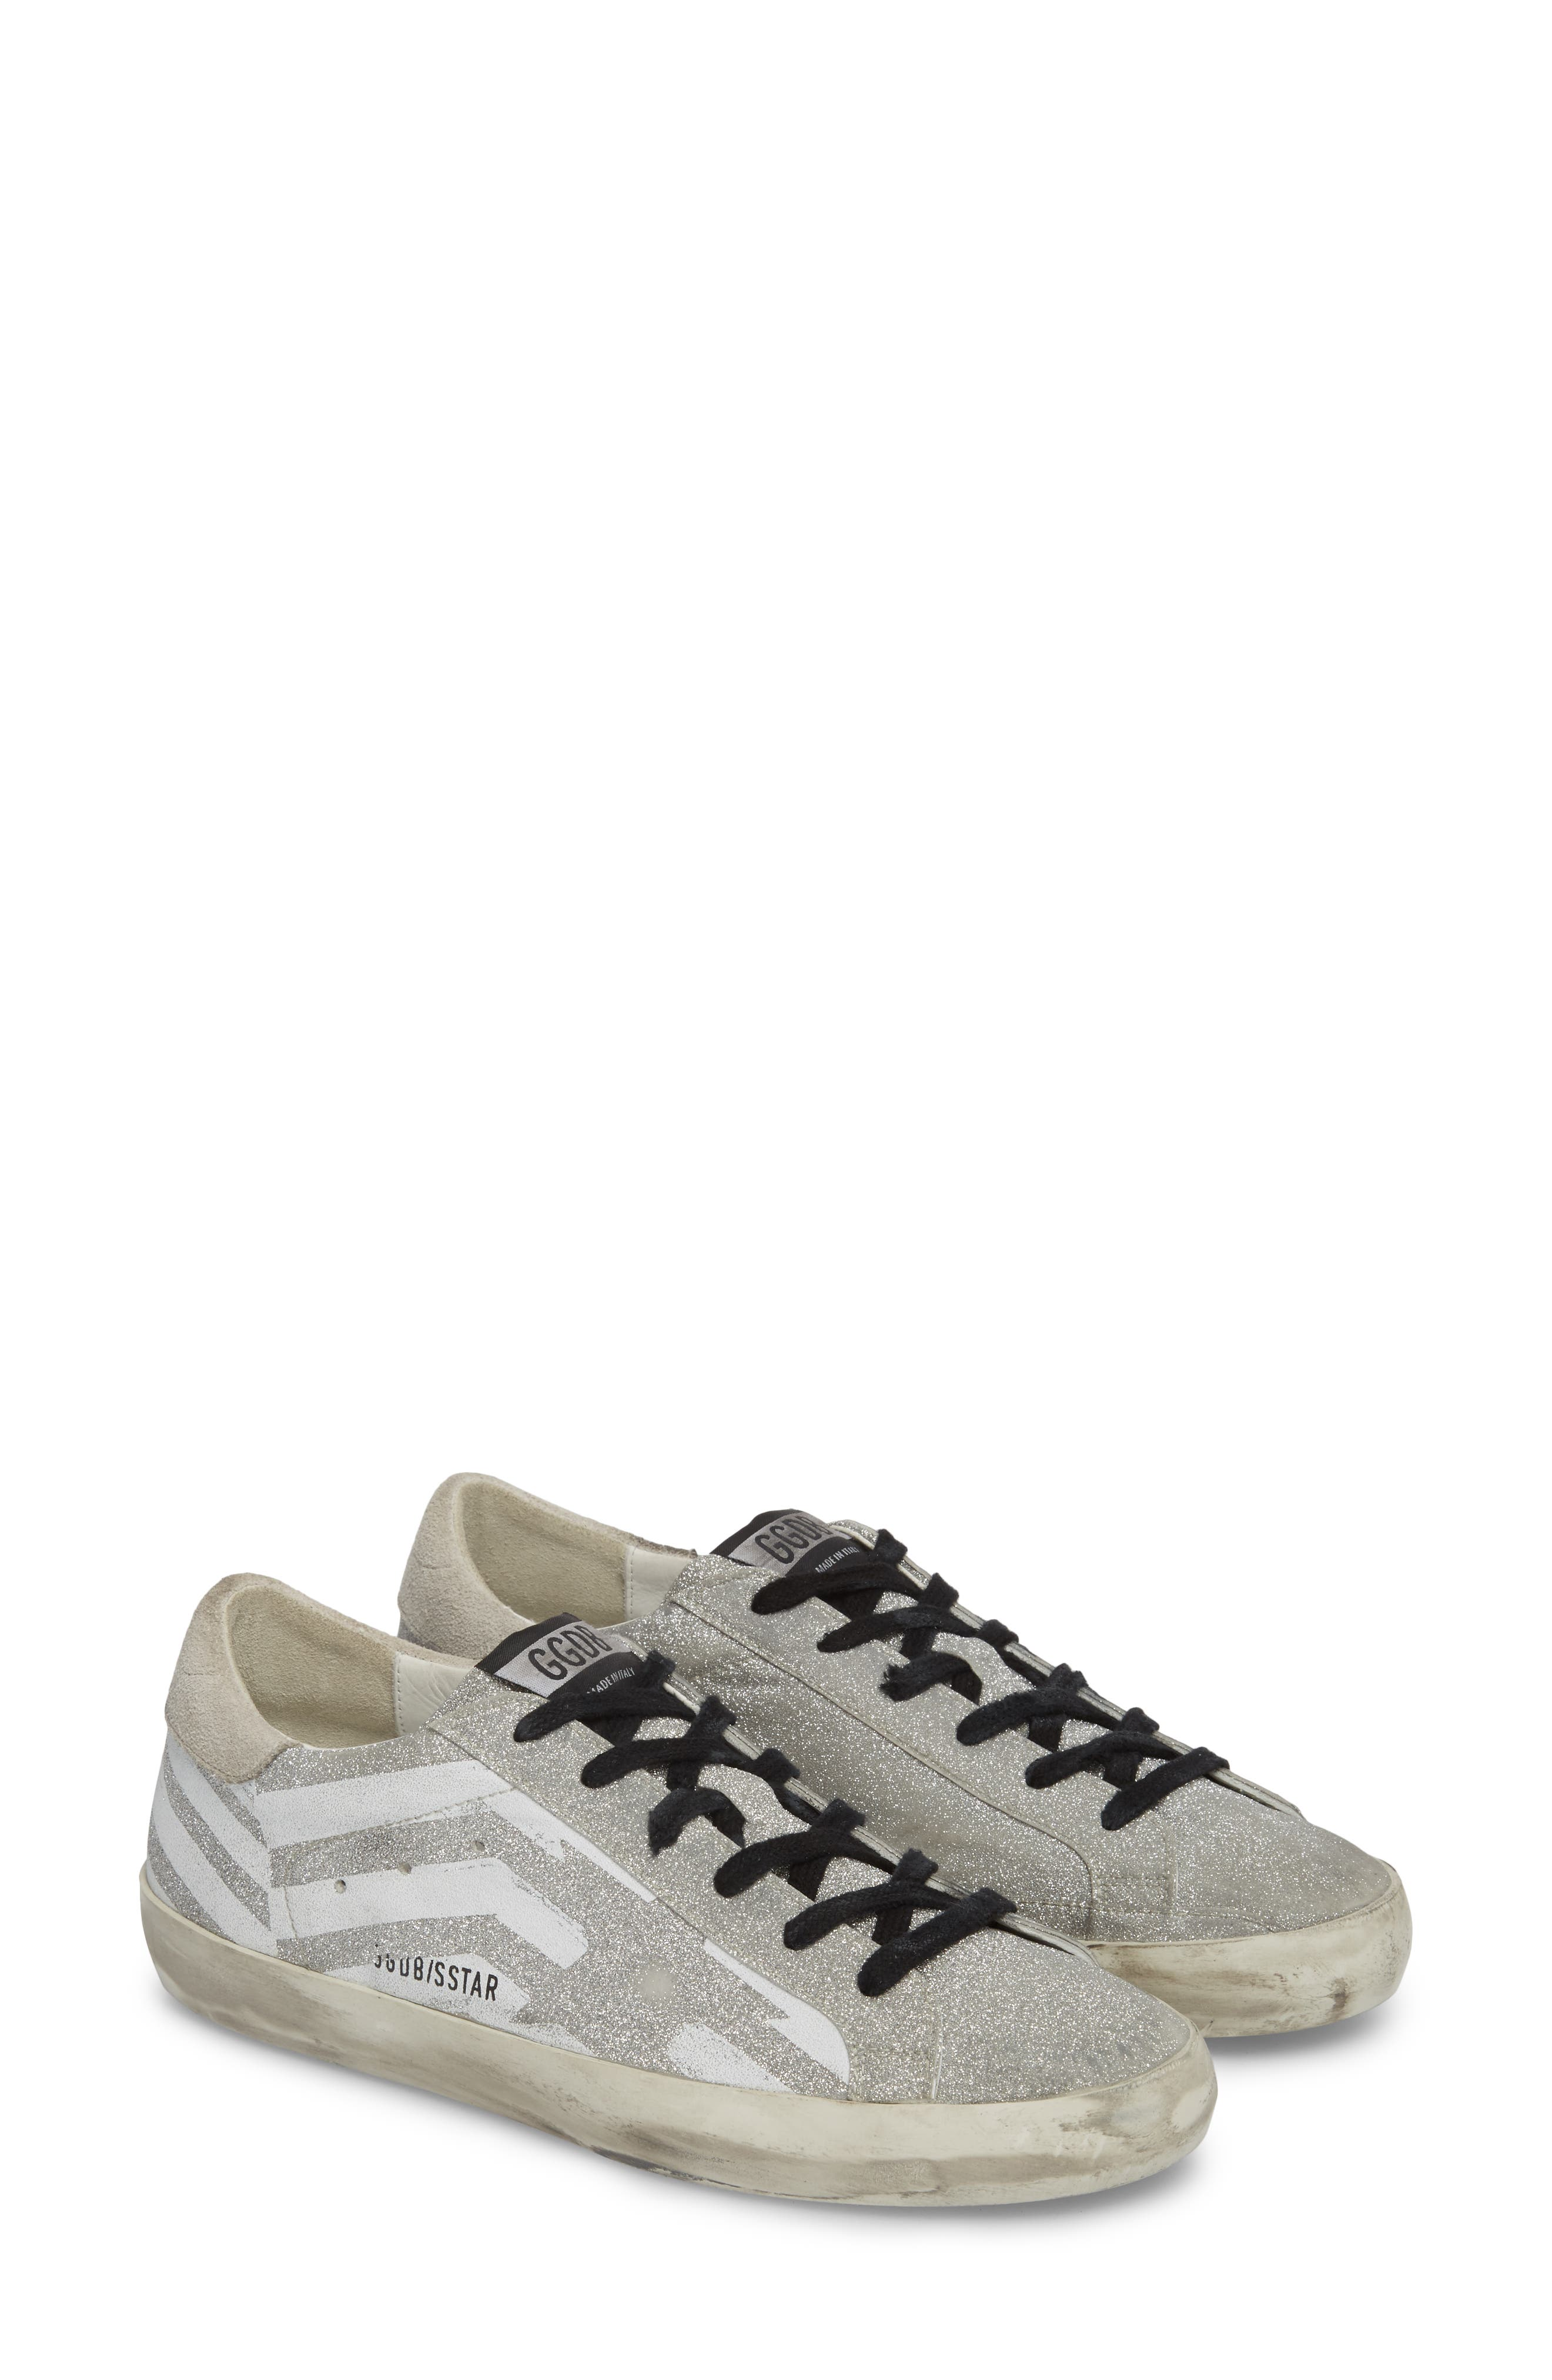 Superstar Low Top Sneaker,                         Main,                         color, Grey/ White